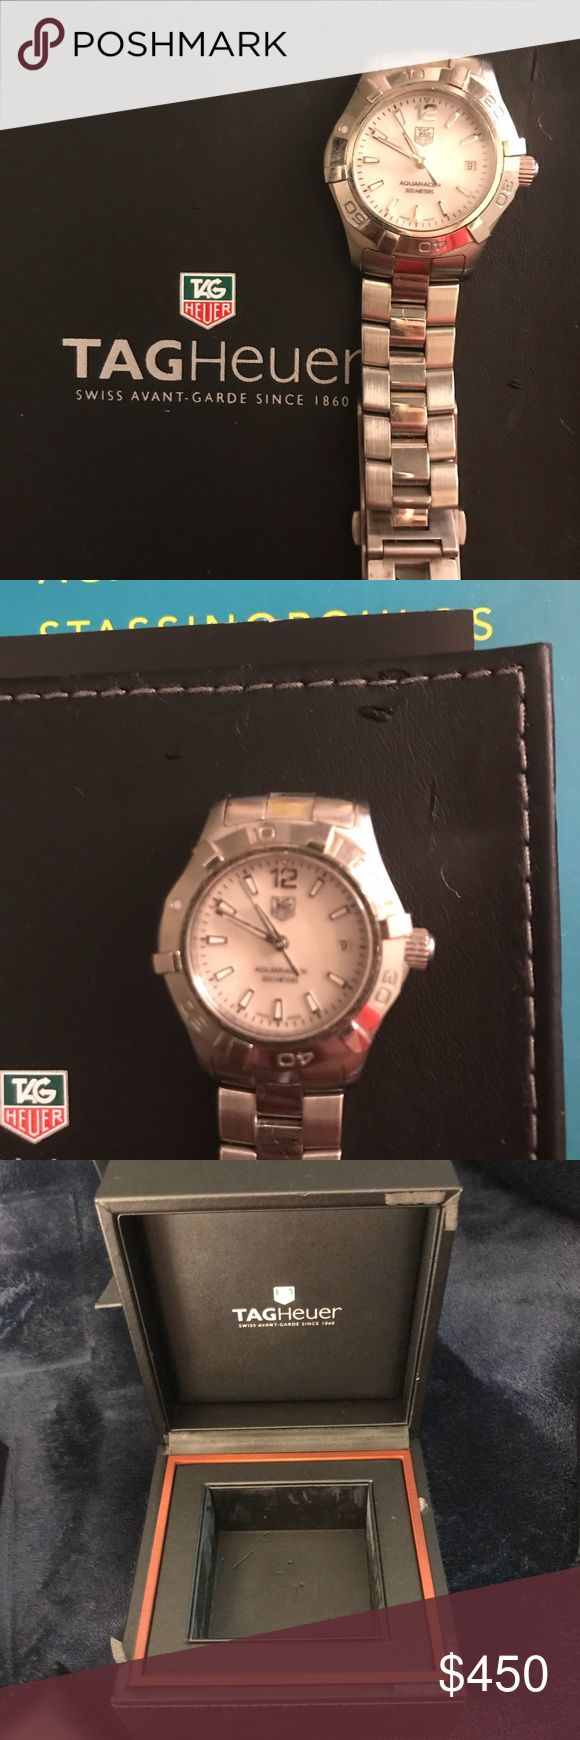 Authentic pearl face Tag Heuer ladies' watch Excellent condition pearl face Tag watch. Comes with box, case and all box contents Tag Heuer Accessories Watches